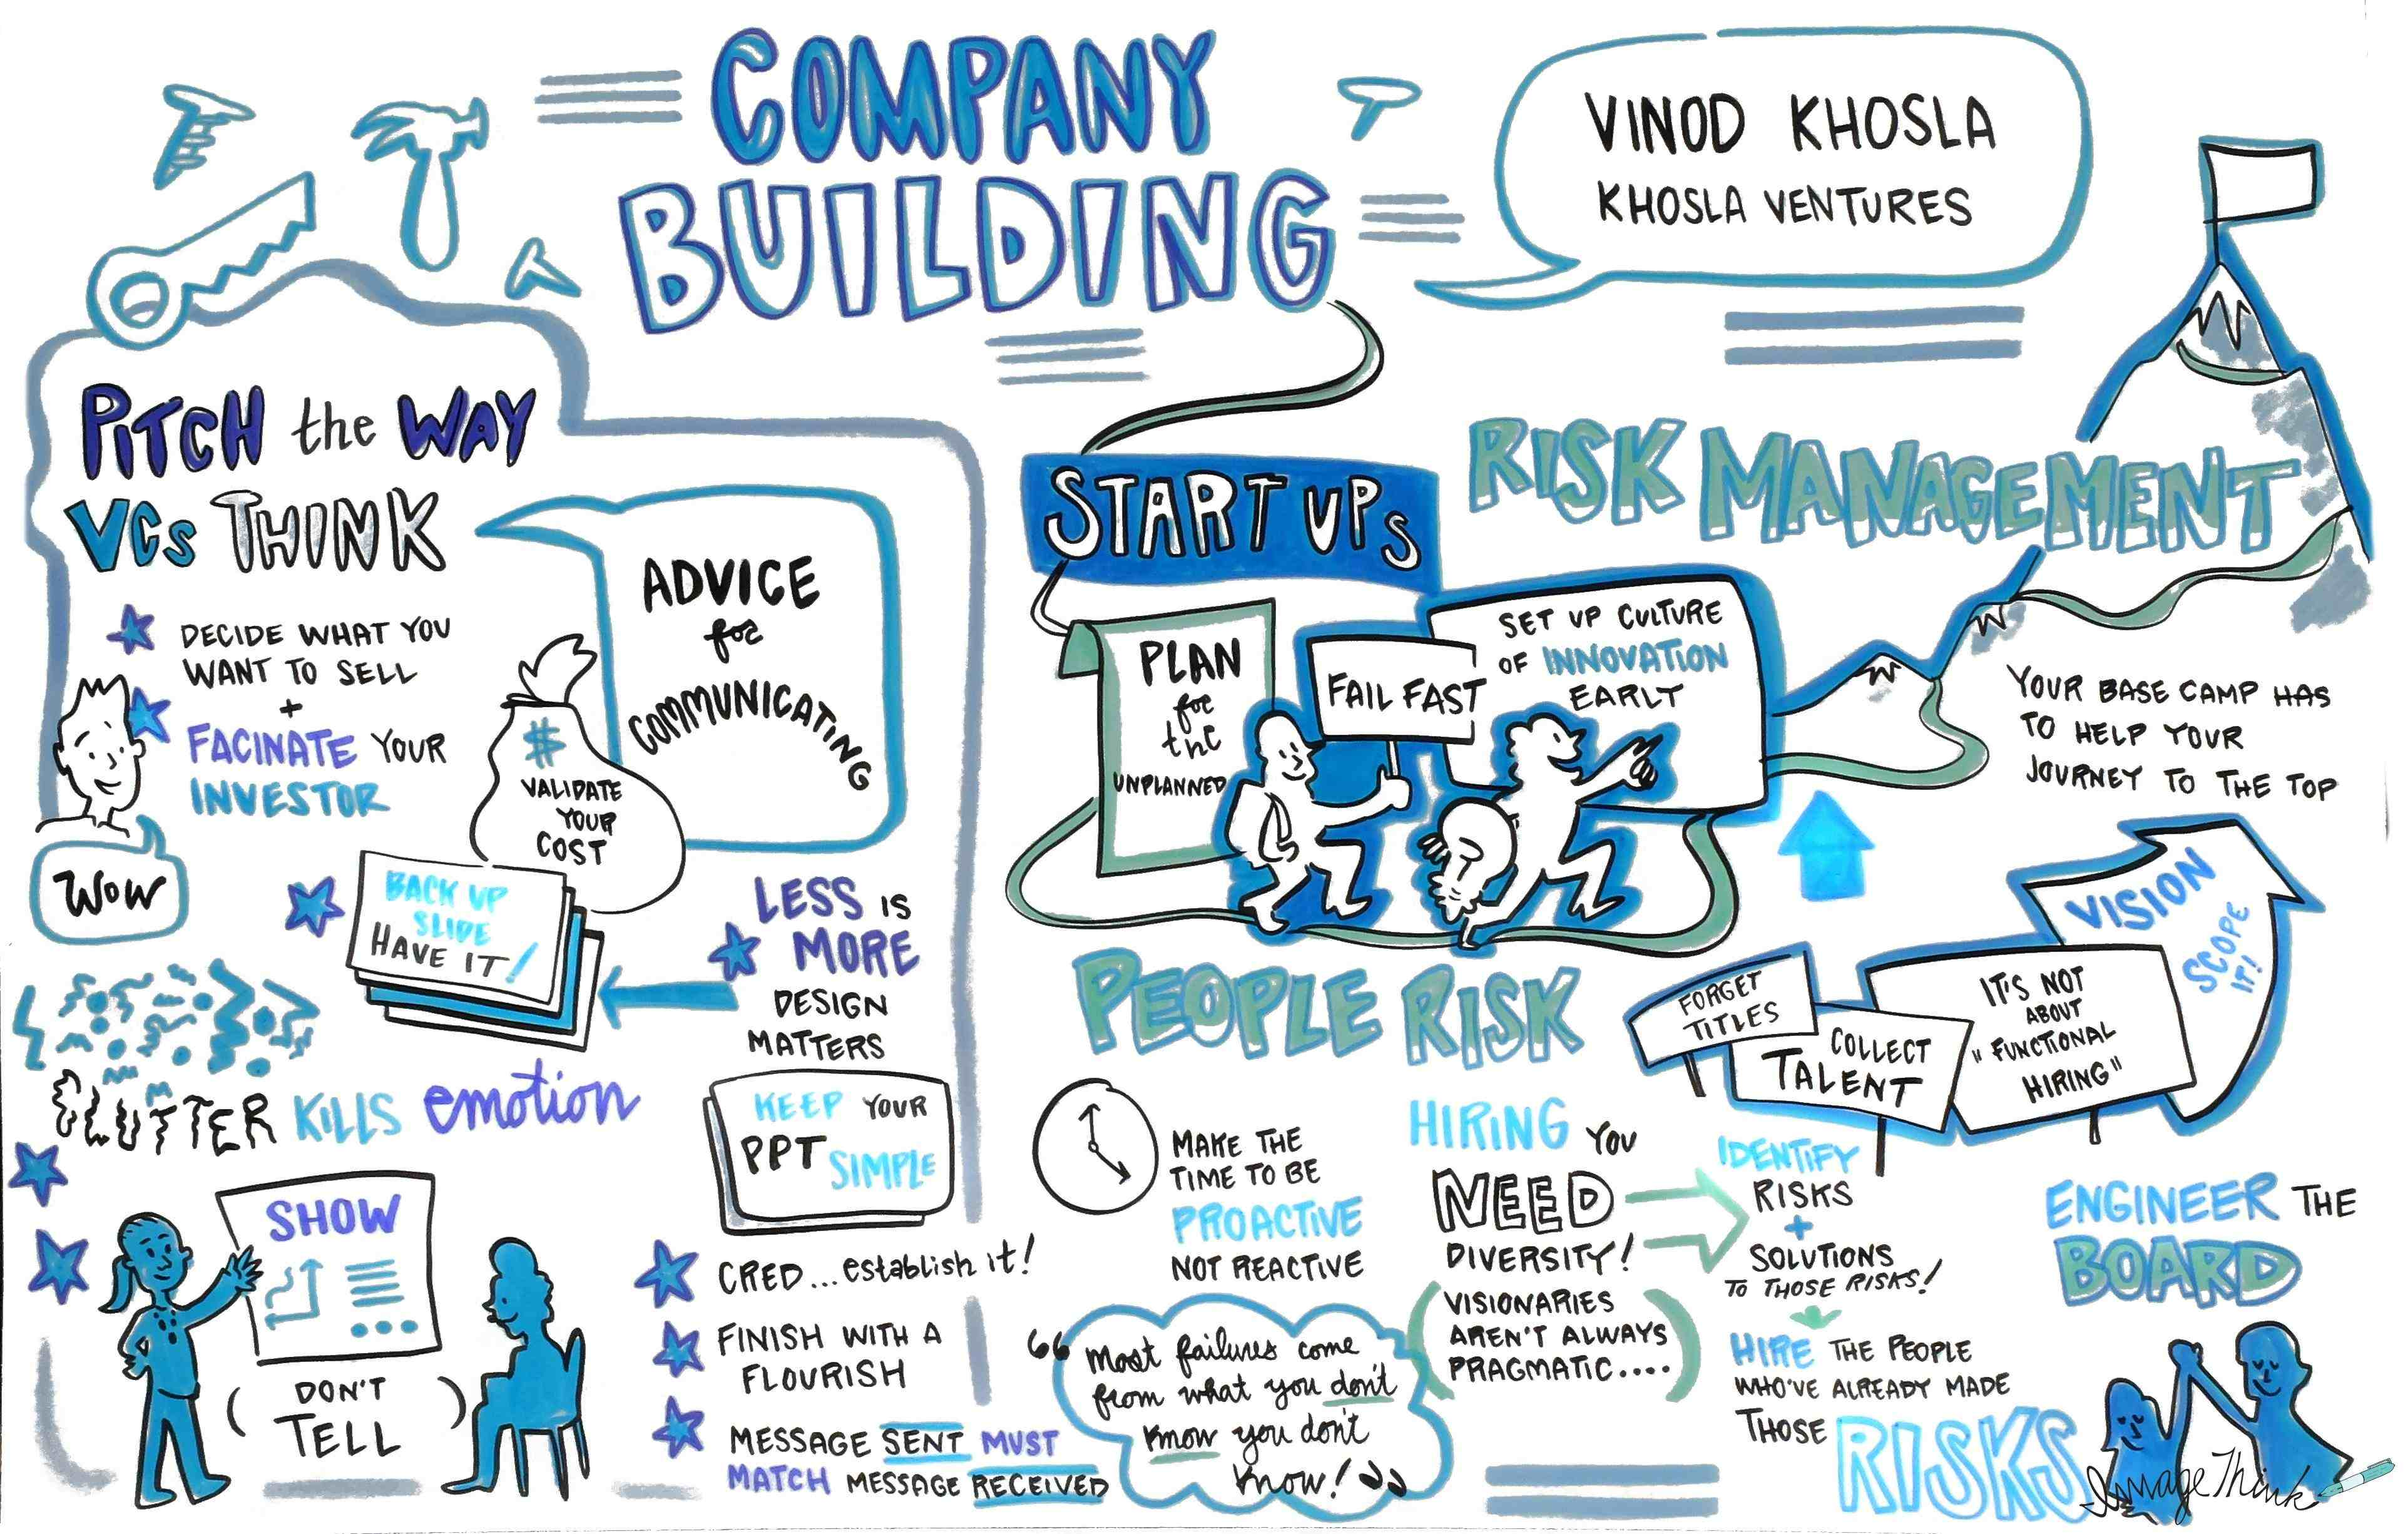 2014kv_summit_052014_companybuilding_graphic